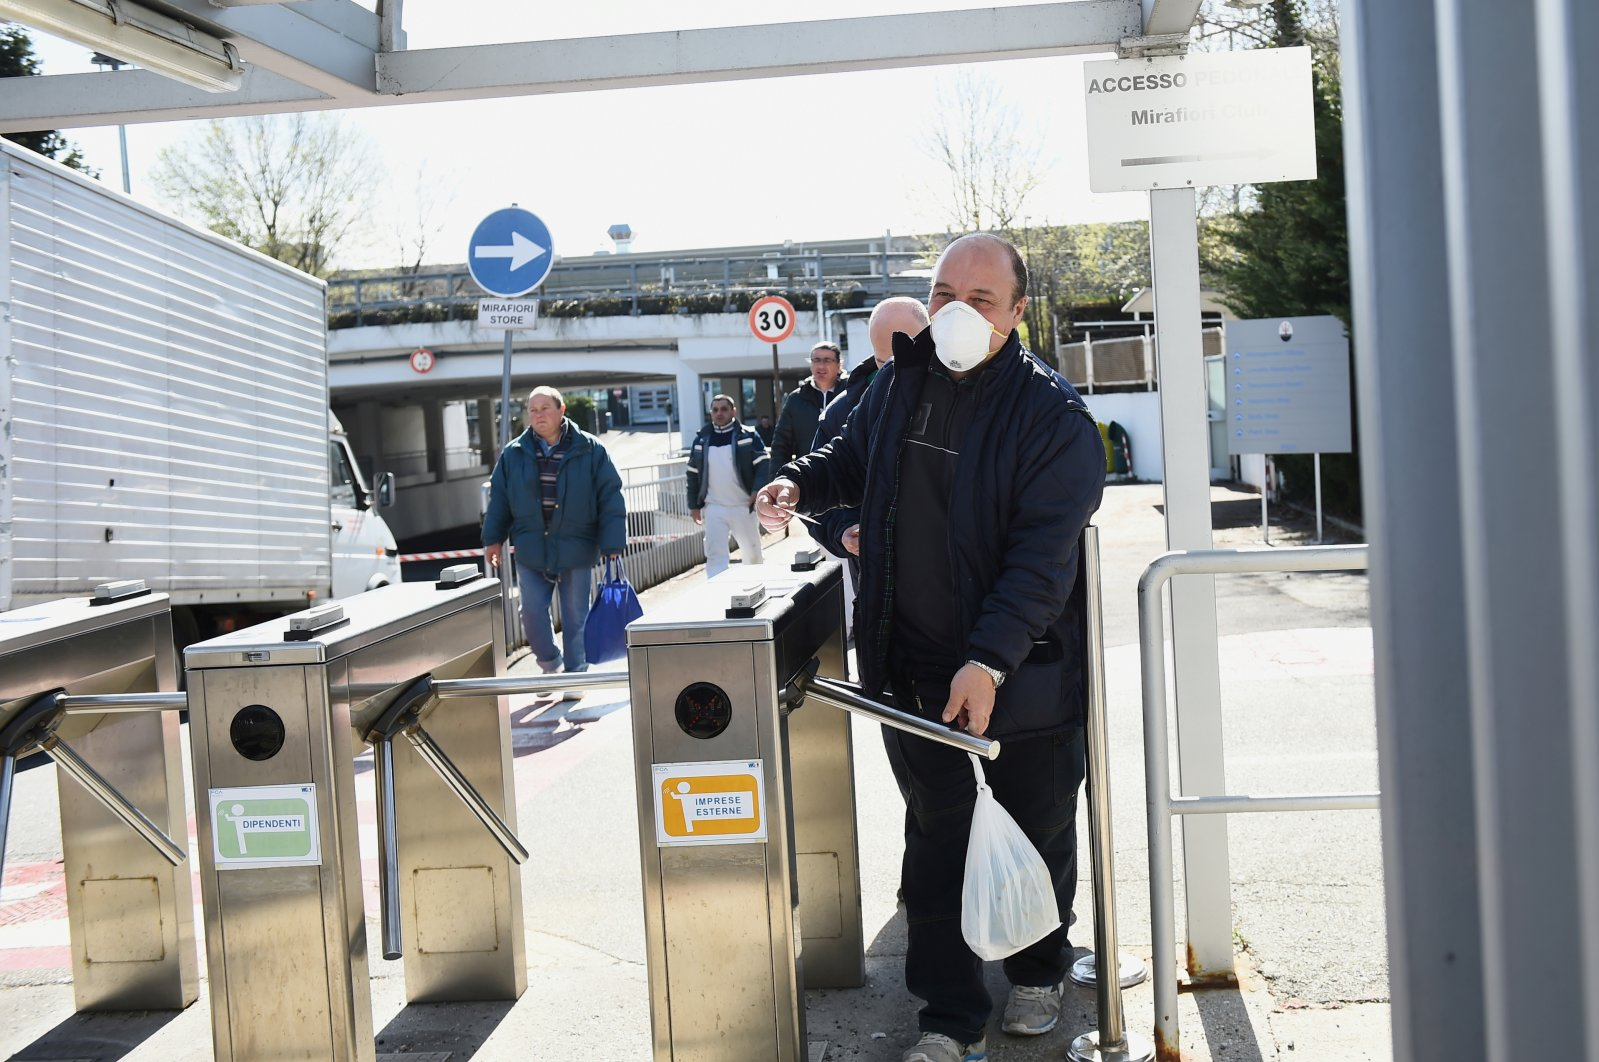 Fiat Chrysler Automobiles worker, wearing a protective face mask, leaves a Mirafiori plant, Turin, Italy, Tuesday, March 10, 2020. (Reuters Photo)